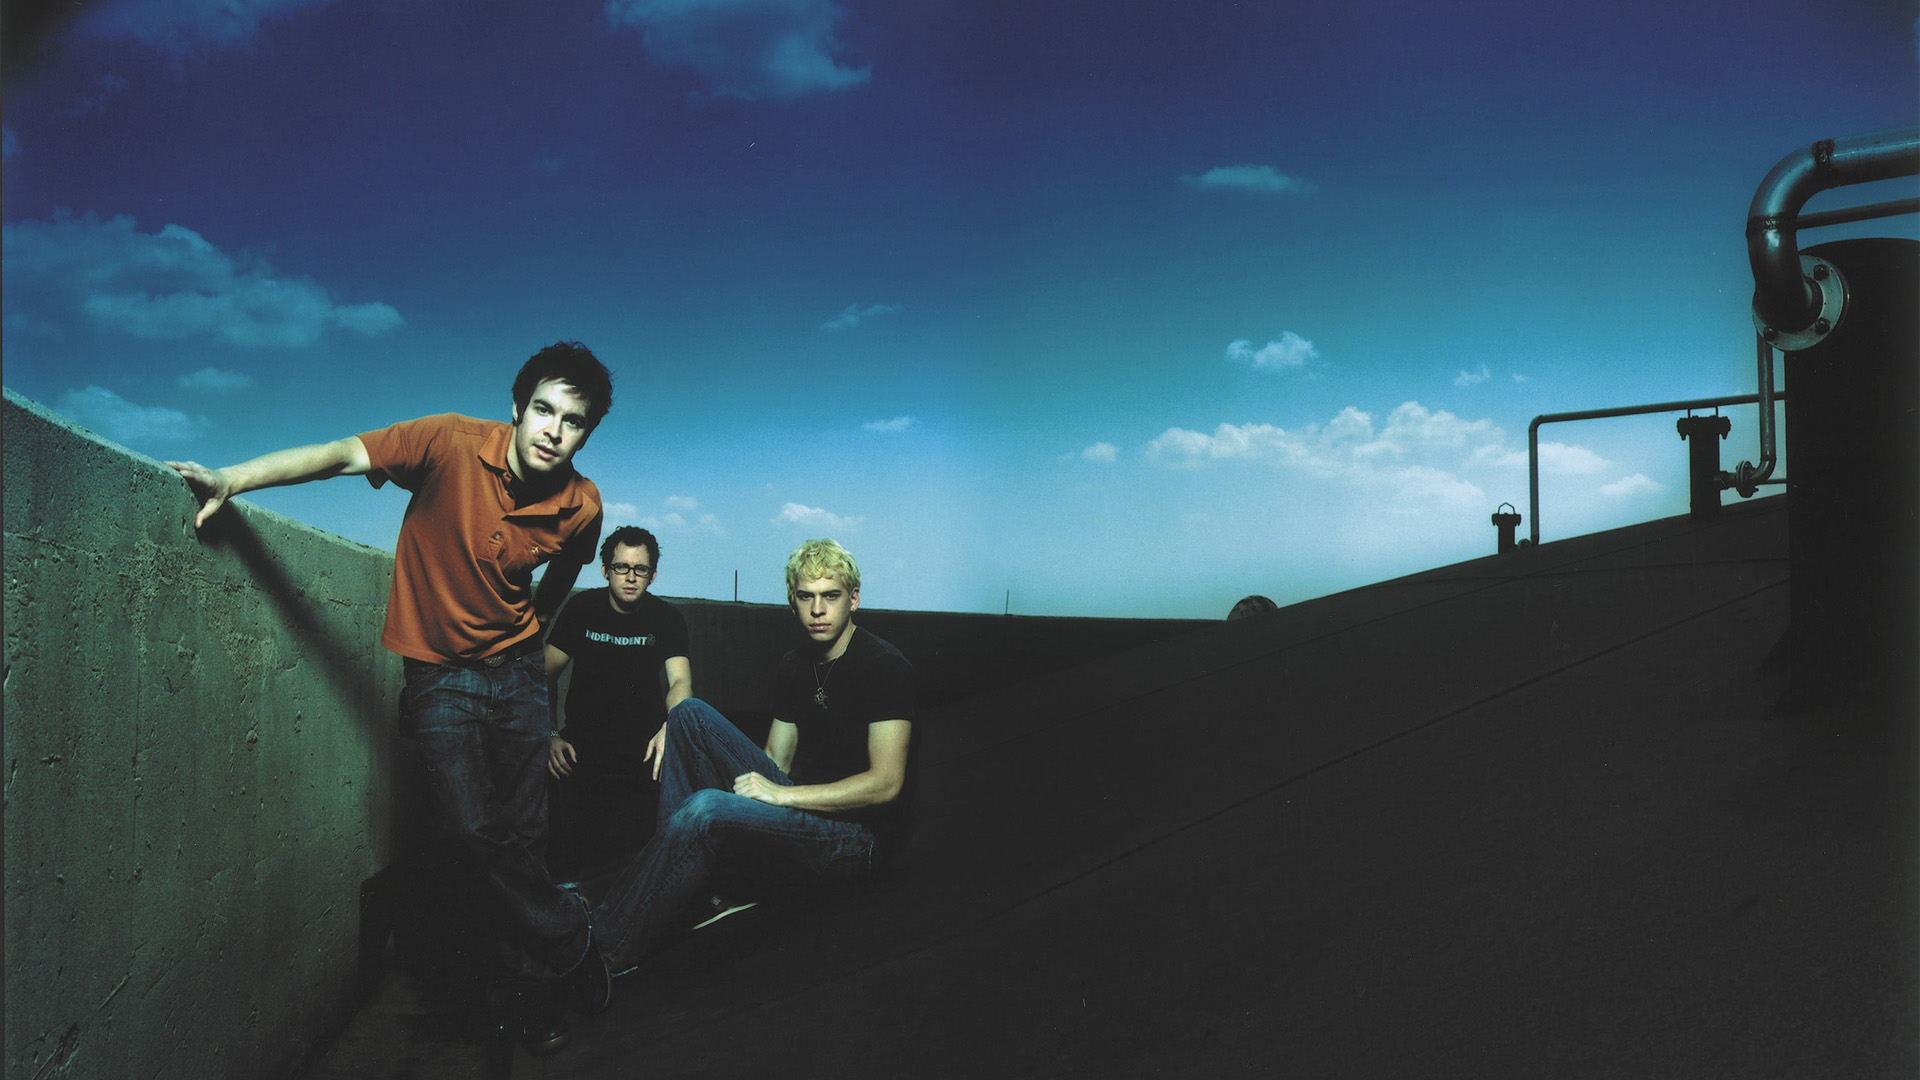 Chevelle full hd wallpaper and background image 1920x1080 id 196187 - Chevelle band pics ...